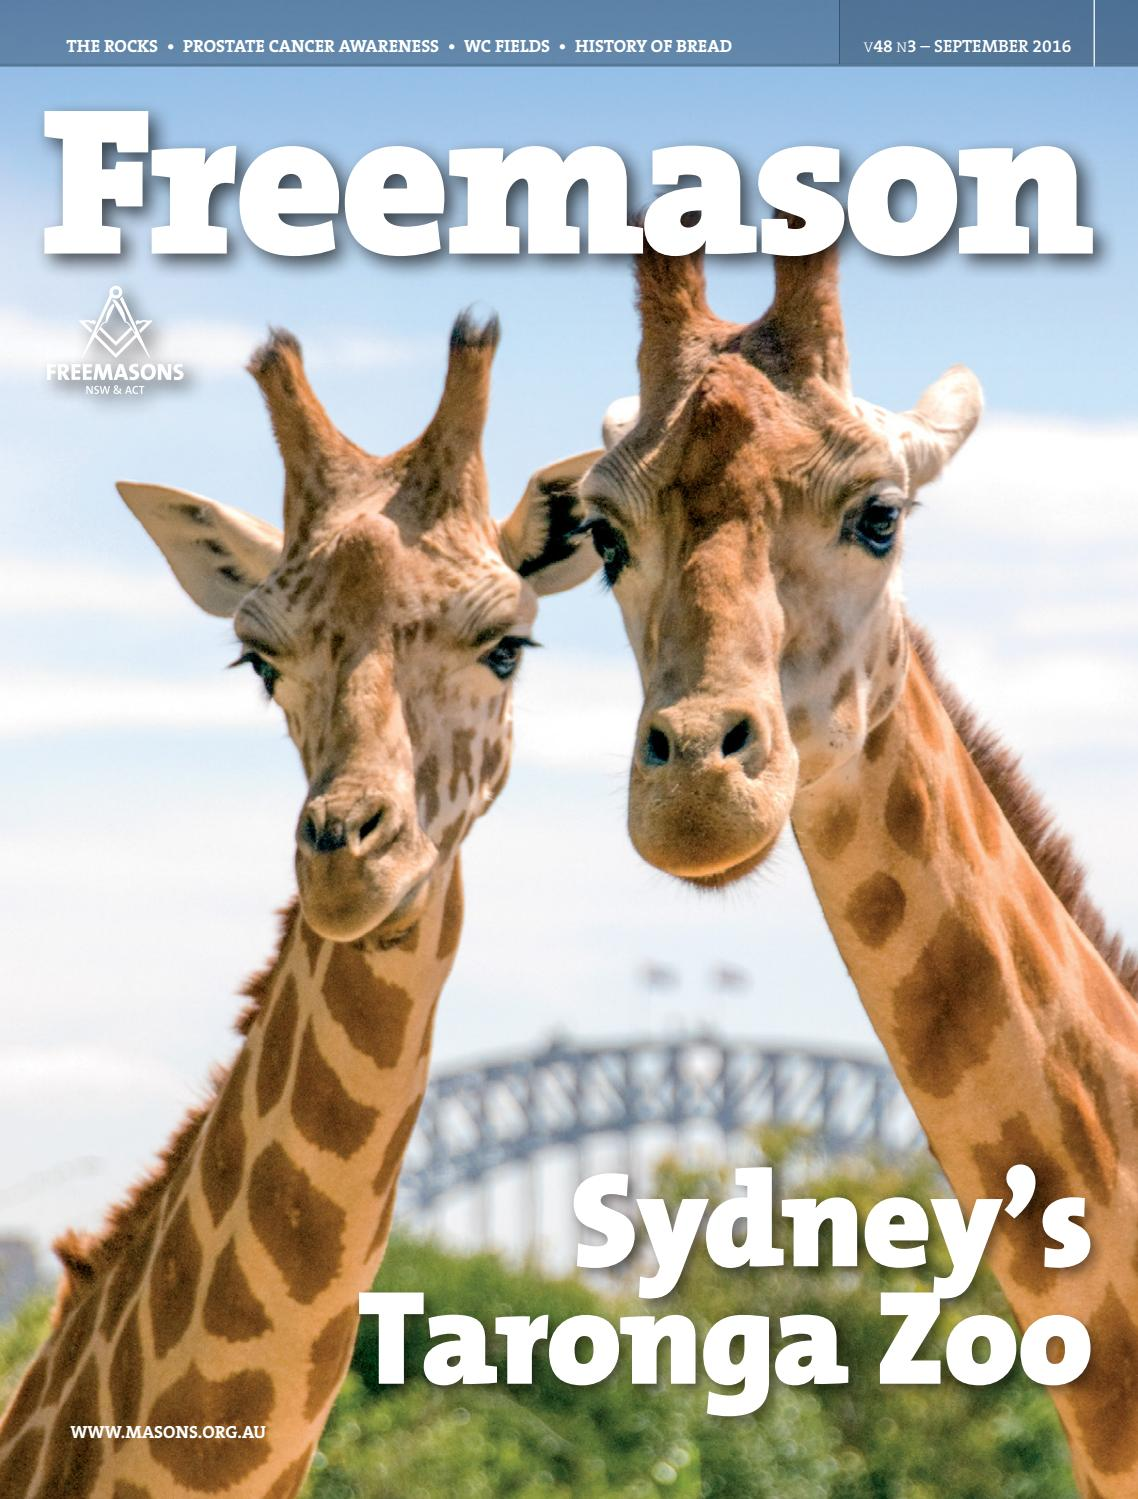 Freemason nsw act september 2016 by apm graphics management issuu m4hsunfo Image collections